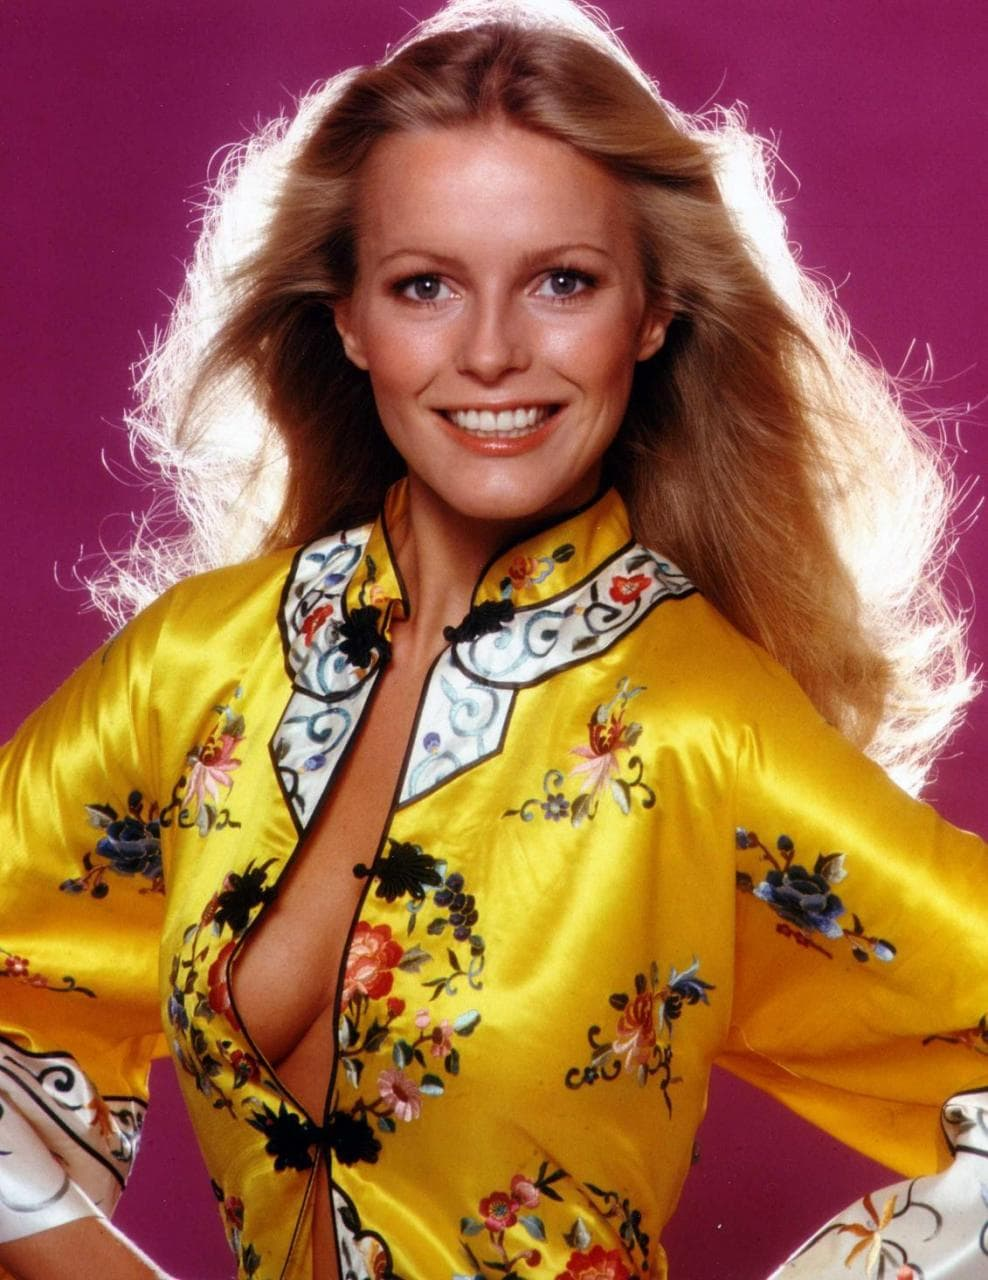 celeb plasticsurgery tumblr m92clyL8sF1rc2by0o1 1280 20201203 Has Cheryl Ladd Had Plastic Surgery? November 3, 2020